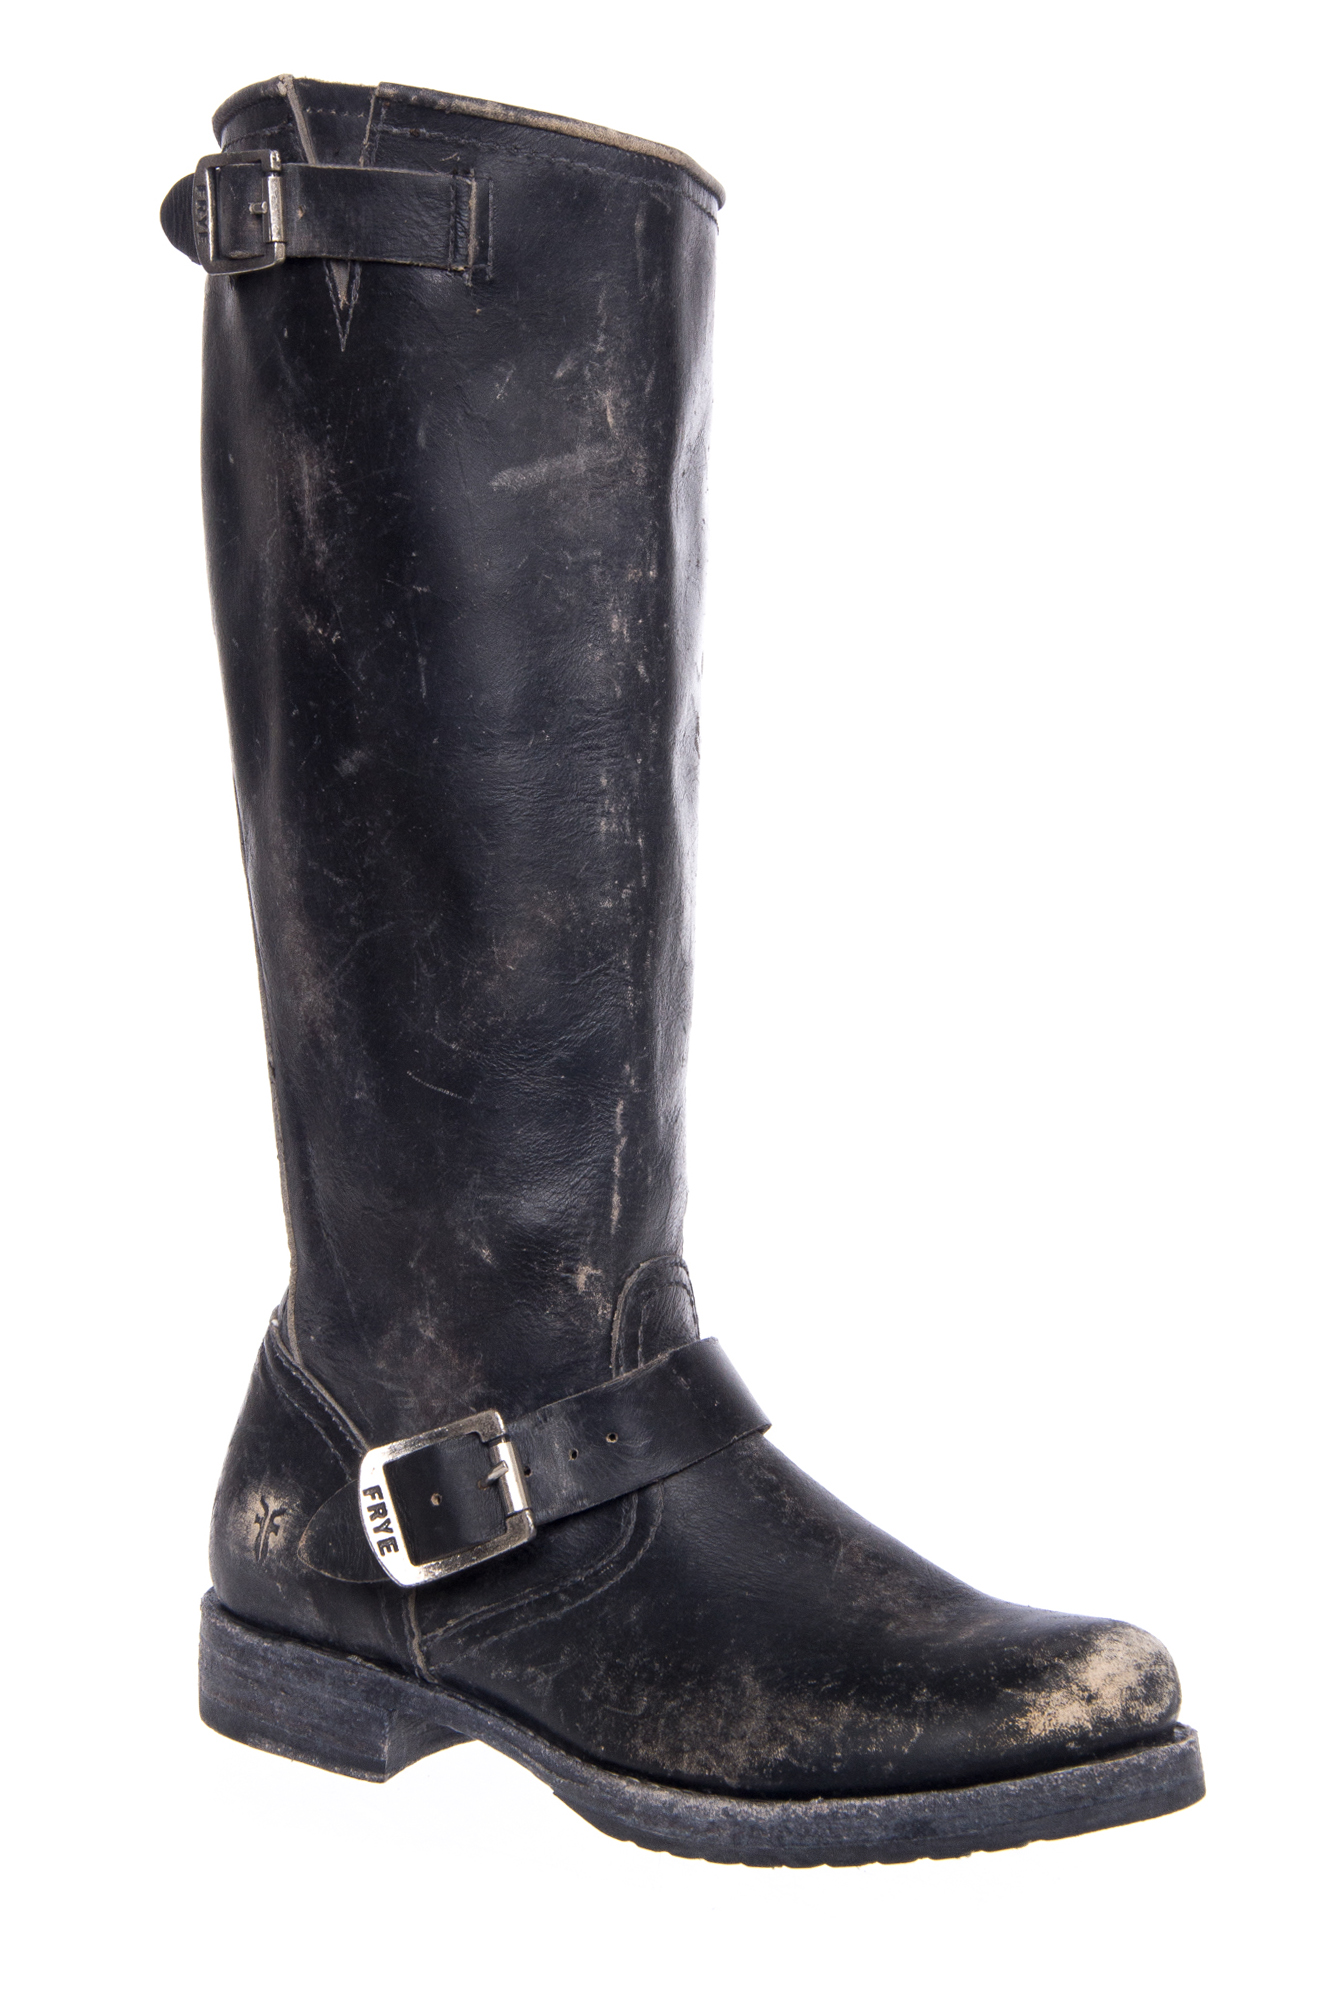 Frye Veronica Slouch Knee High Boots - Black